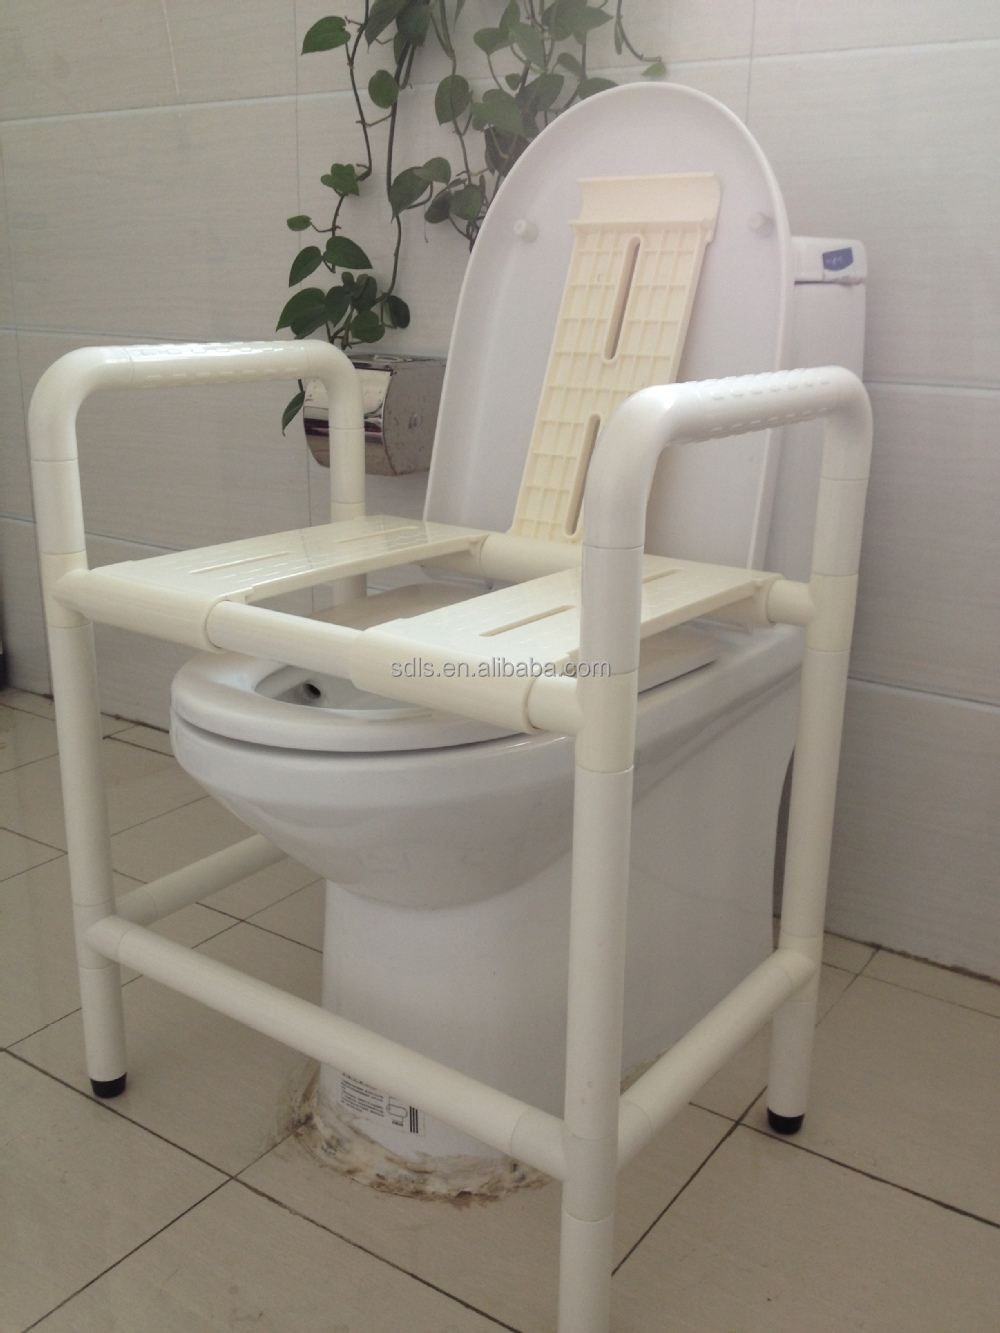 Comfortable Shower Chair, Comfortable Shower Chair Suppliers and ...